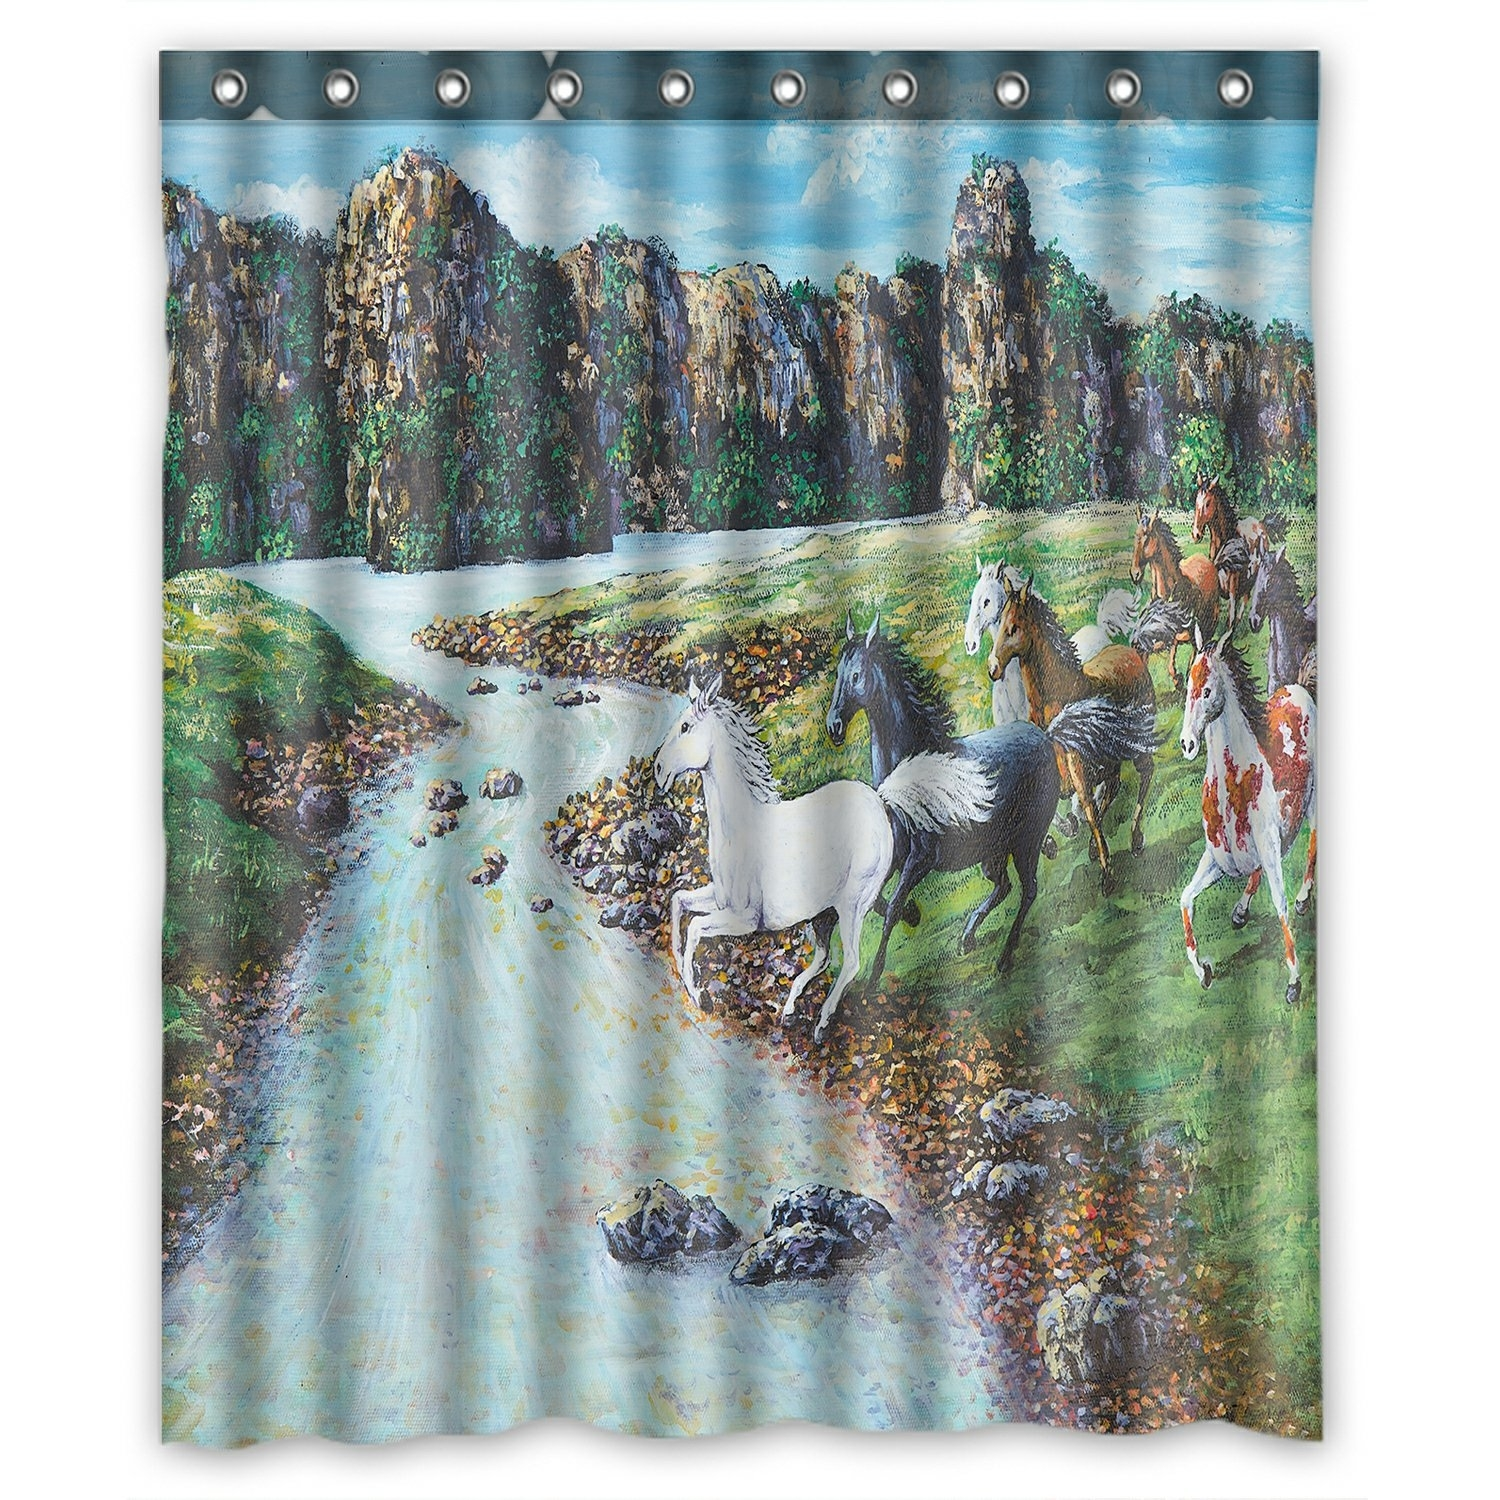 Oil Painting Landscape Shower Curtain, Animal Horses Crossing the River Shower Curtain 60x72 inch